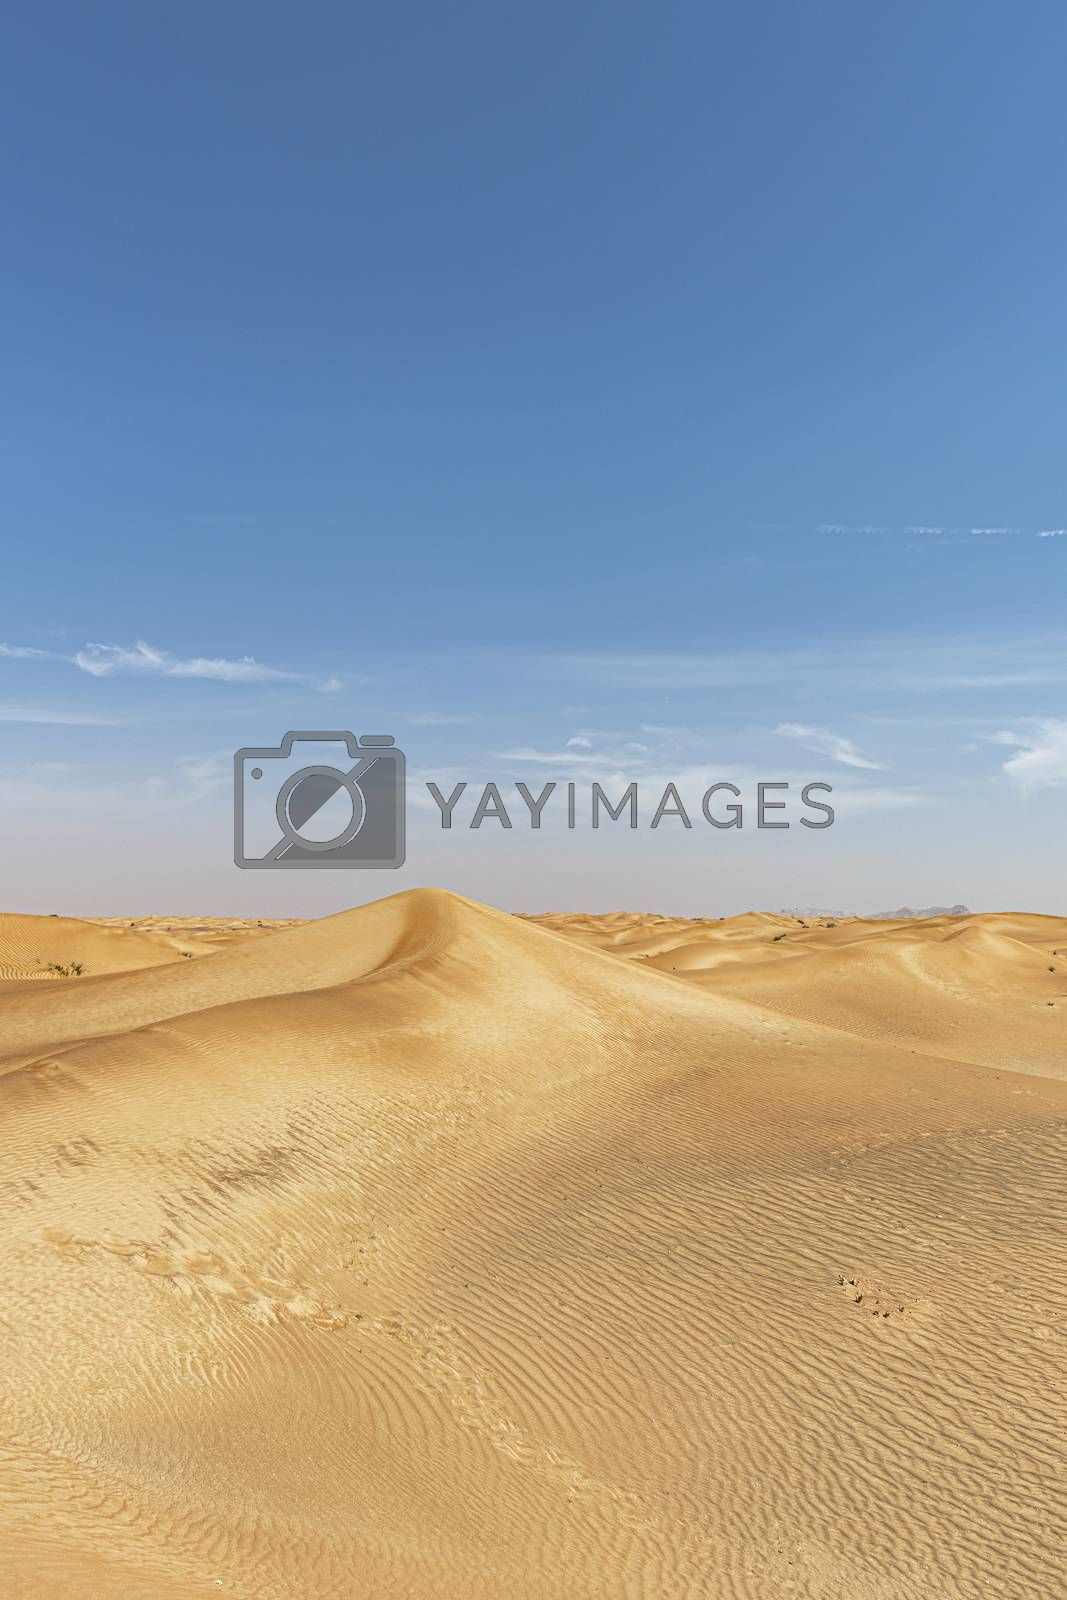 Desert landscape and with large copy space in the blue sky, for presentation